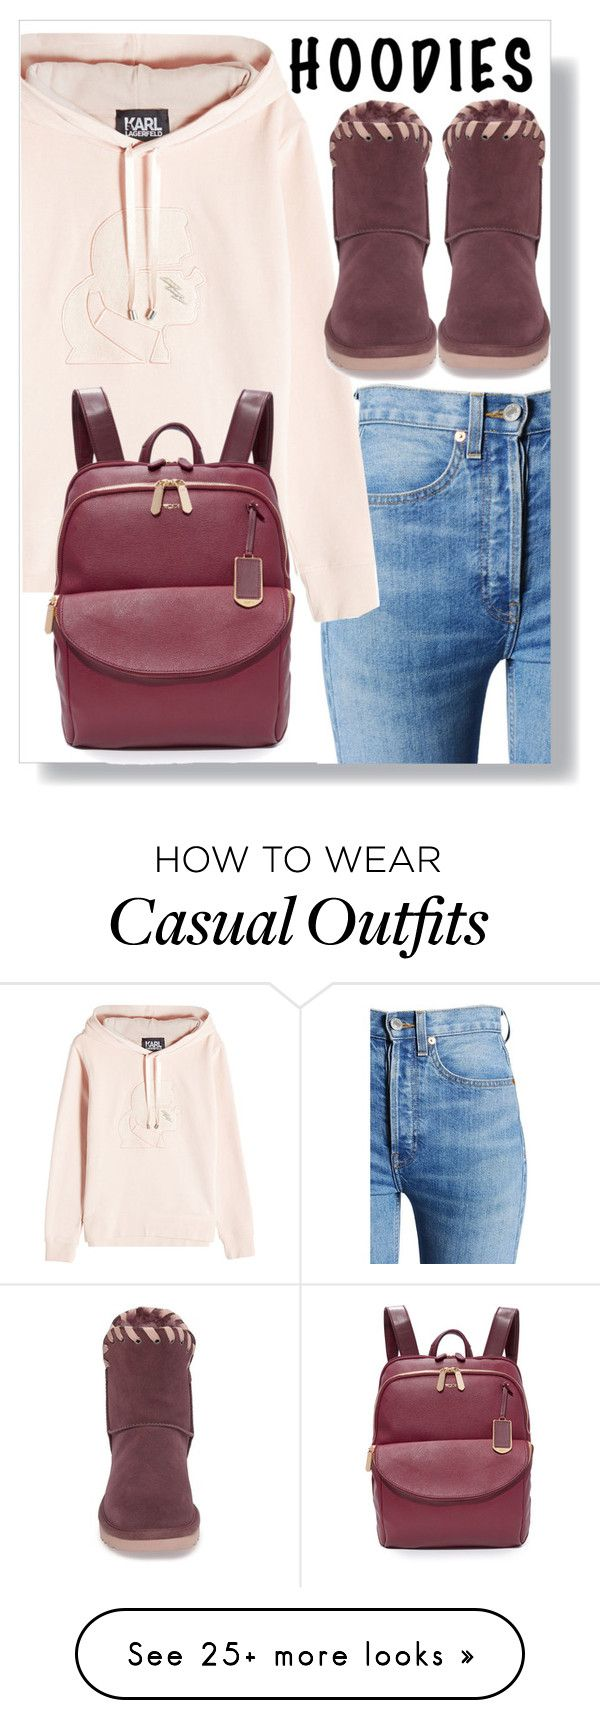 """""""Casual with hoodies"""" by aleks-g on Polyvore featuring RE/DONE, Karl Lagerfeld, UGG and Tumi"""